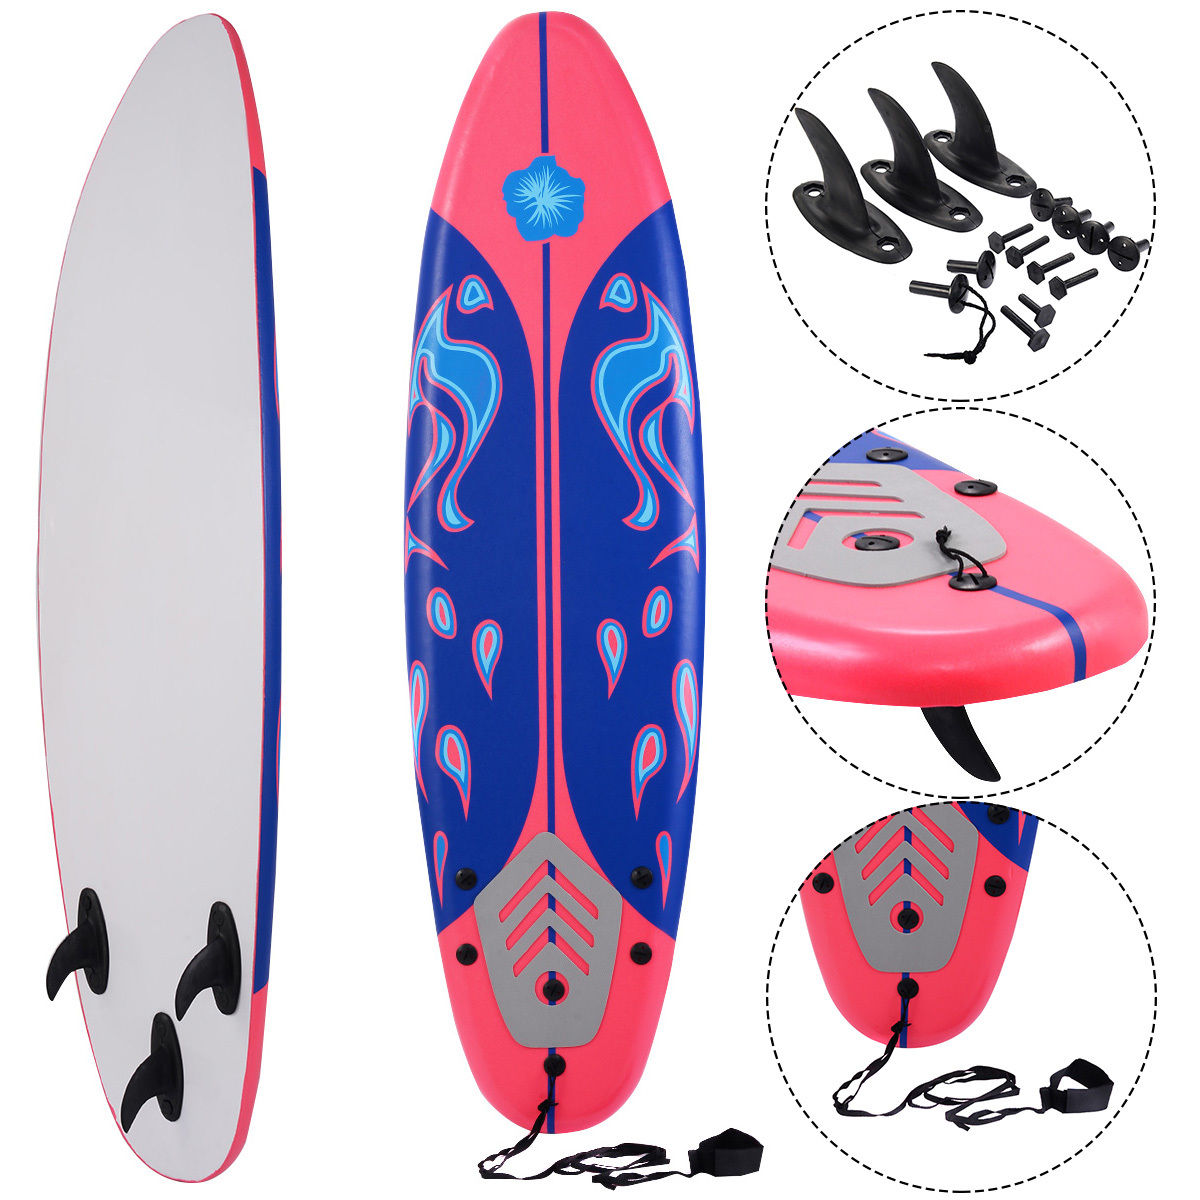 Costway 6' Surfboard Surf Foamie Boards Surfing Beach Ocean Body Boarding Red by Costway